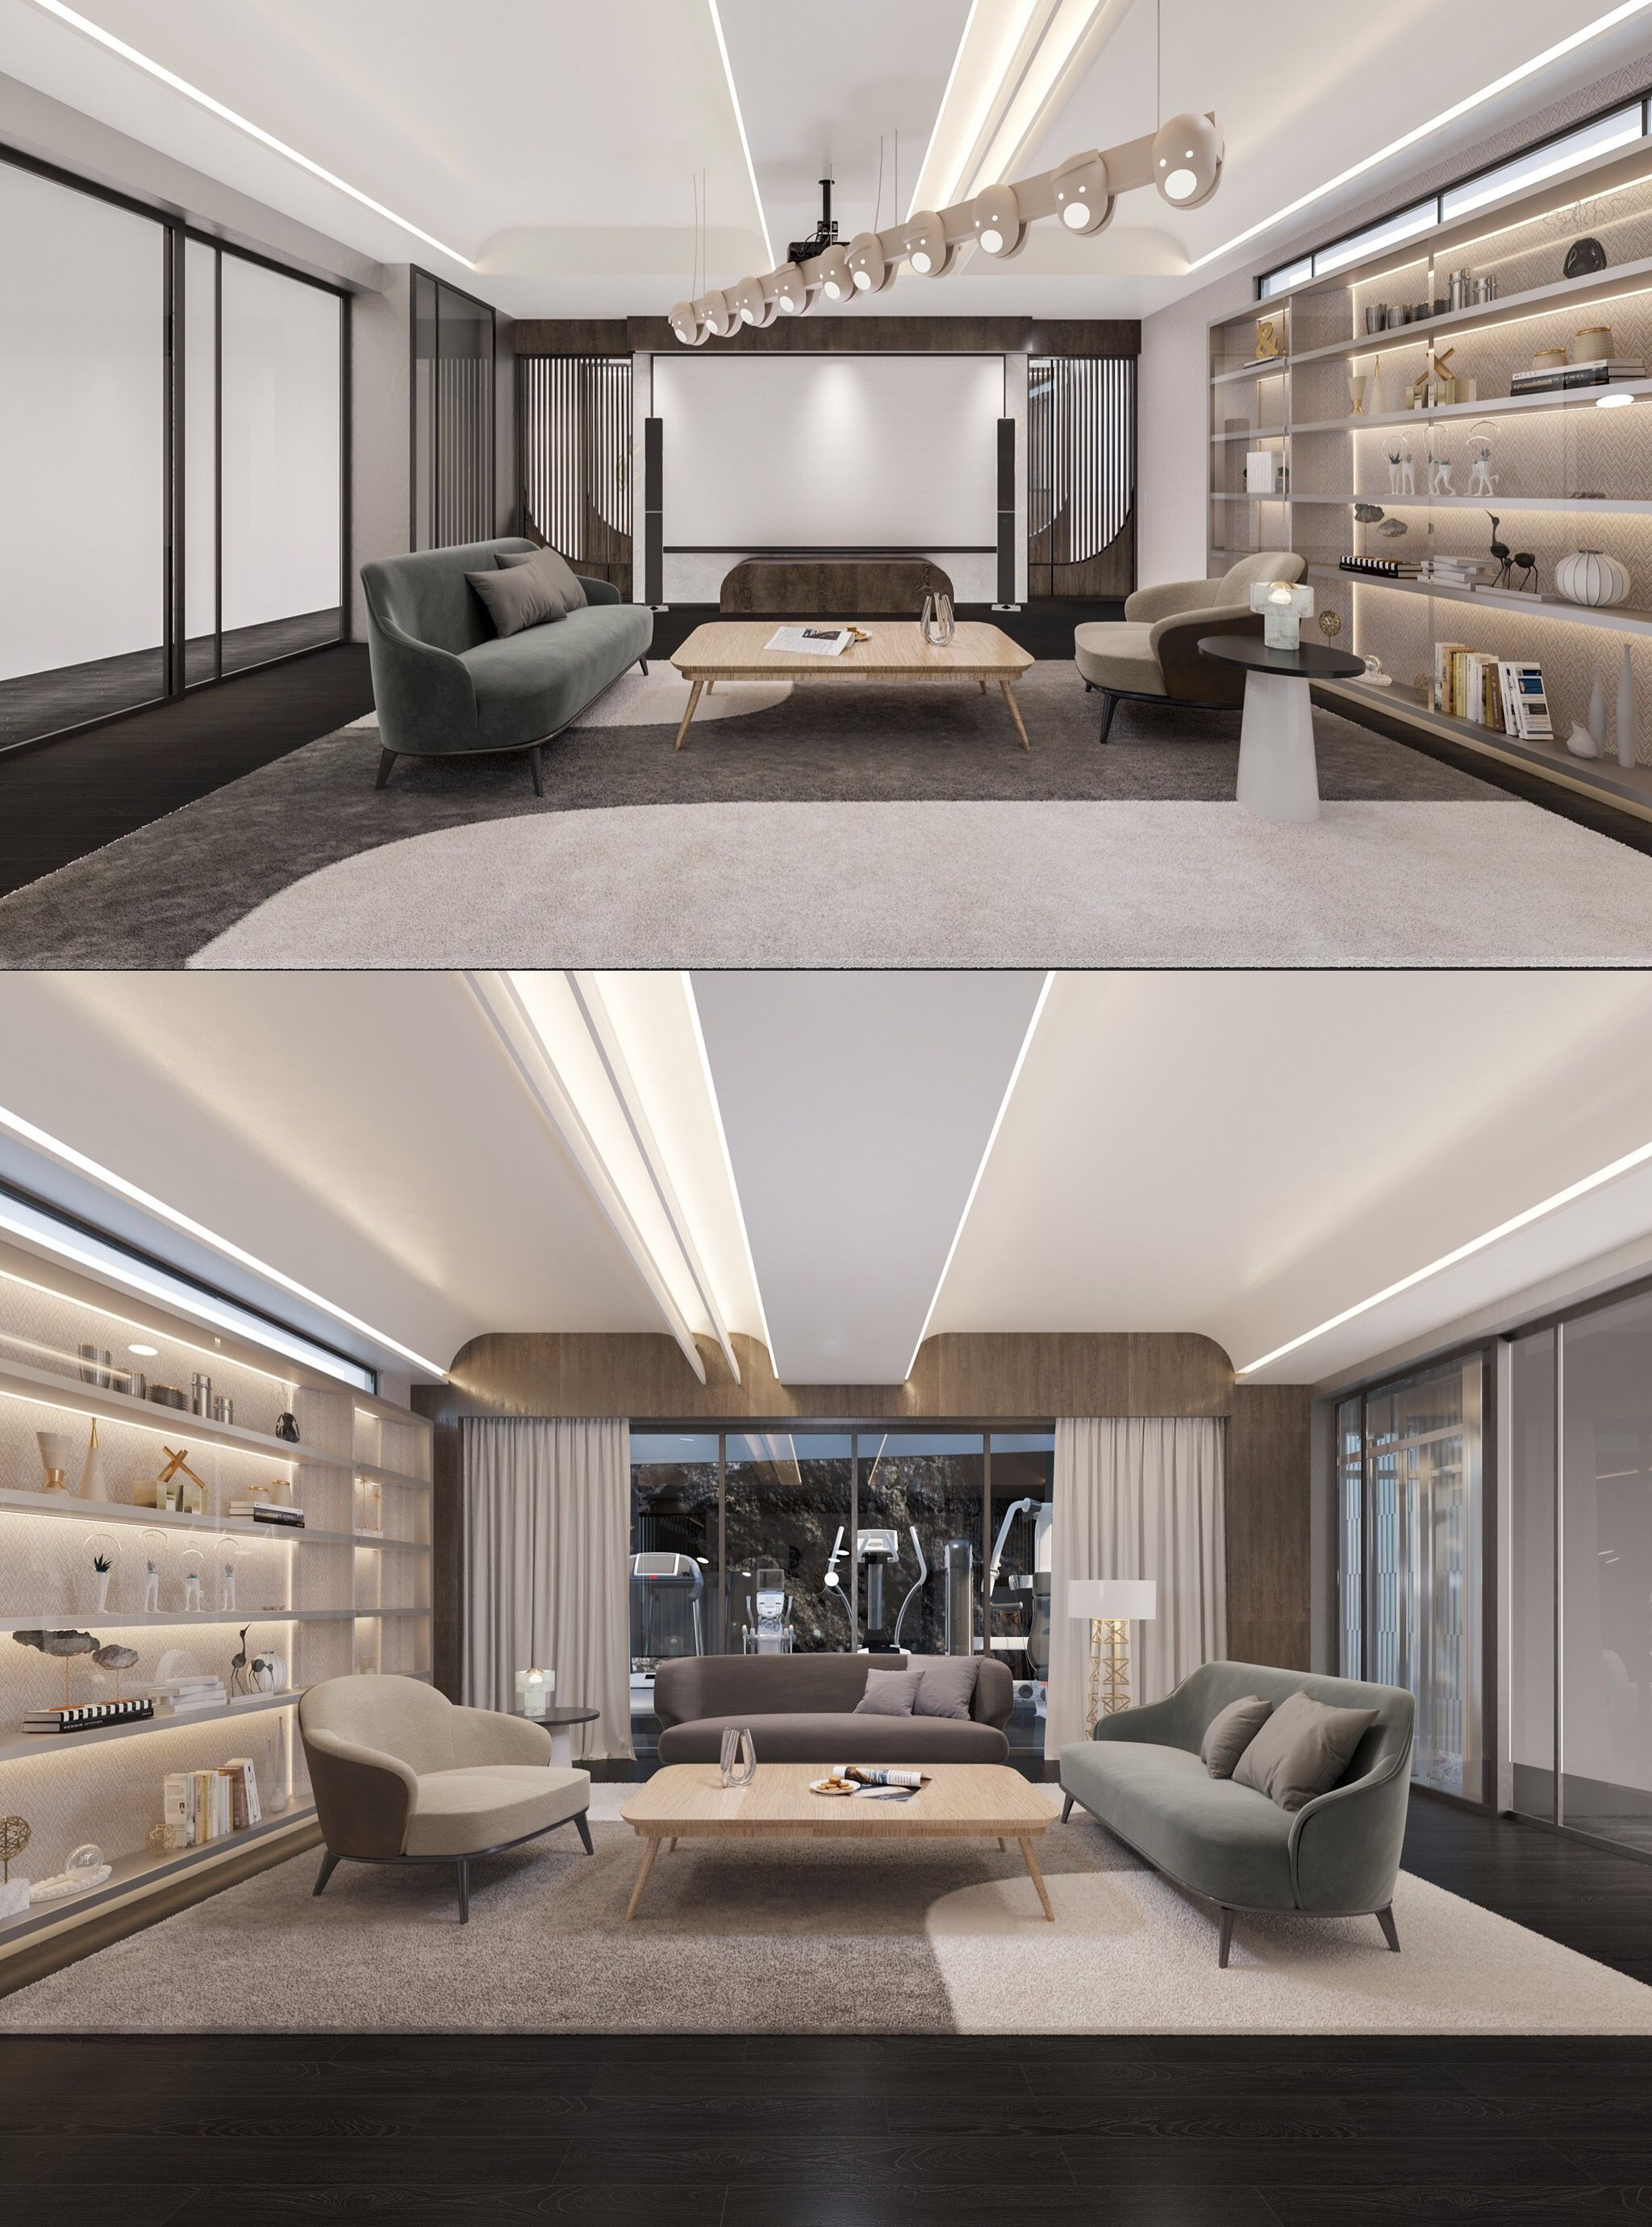 Pin On ديكور Decorative ceilings living room